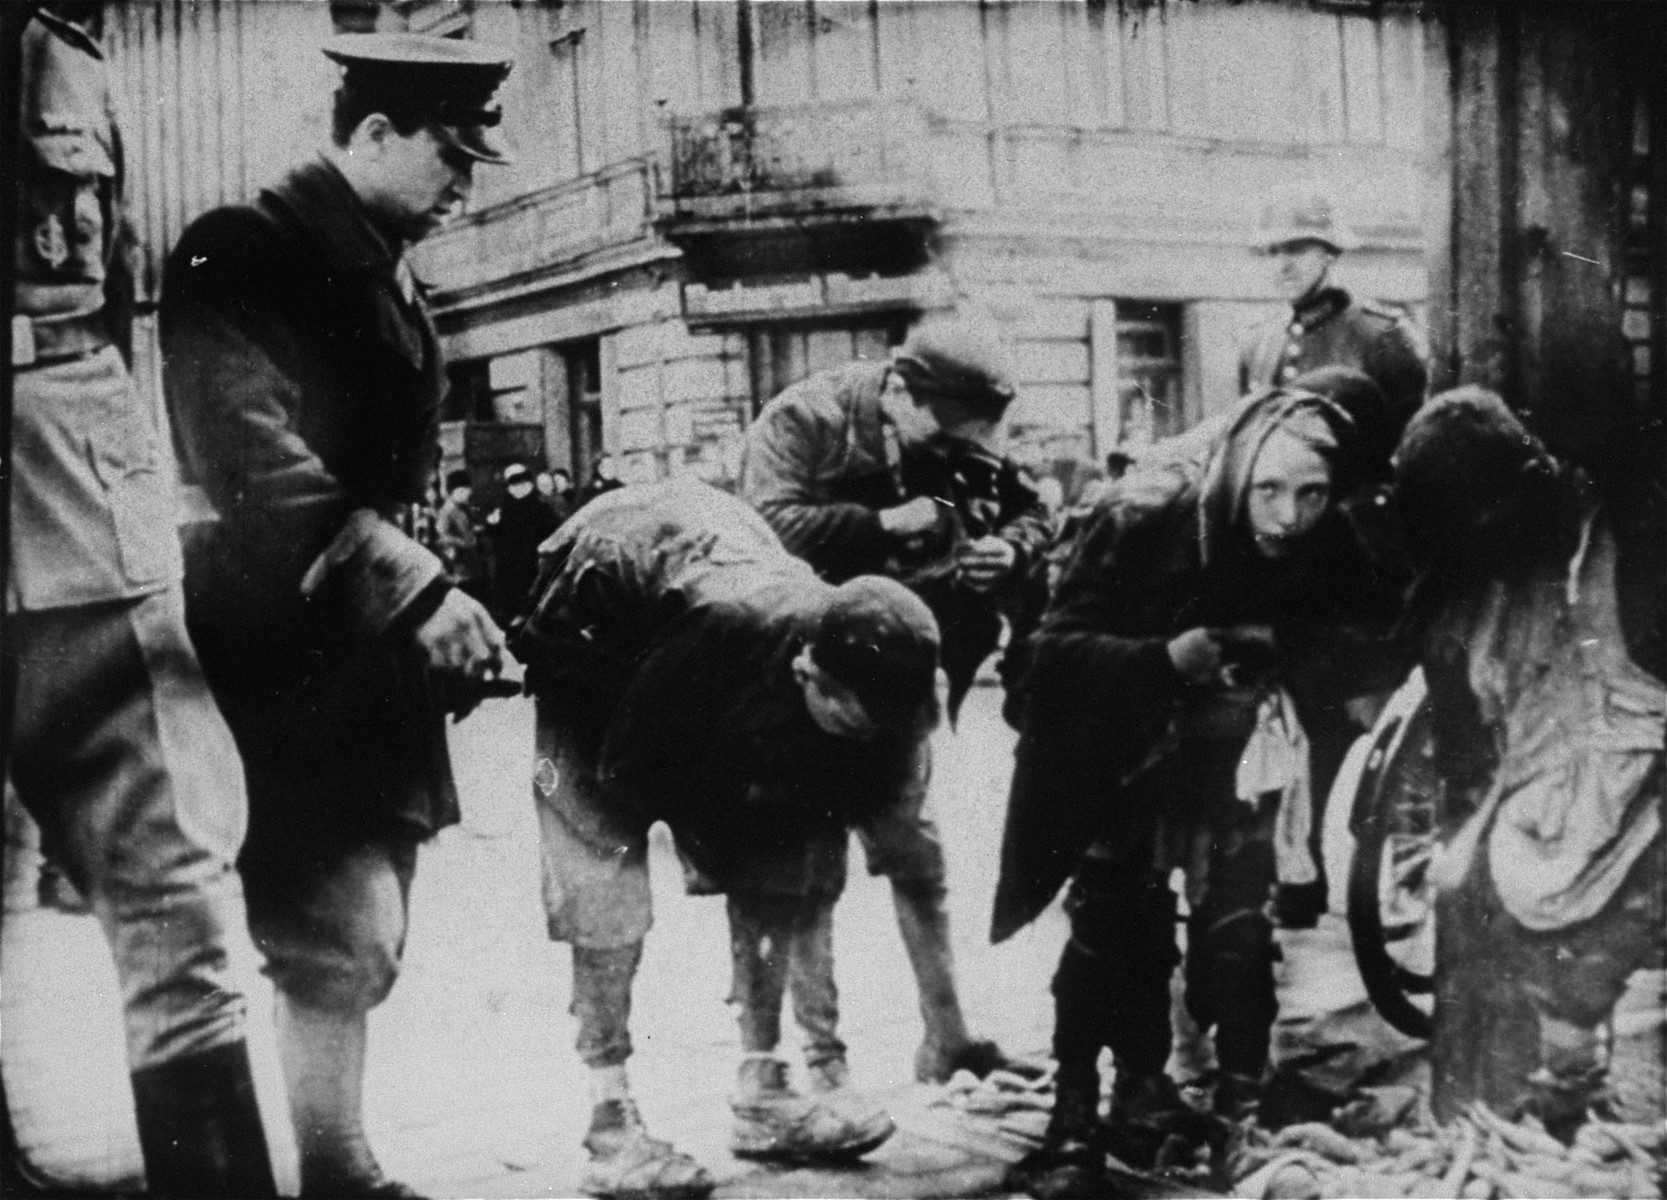 Young boys caught smuggling by a German soldier in the Warsaw Ghetto.